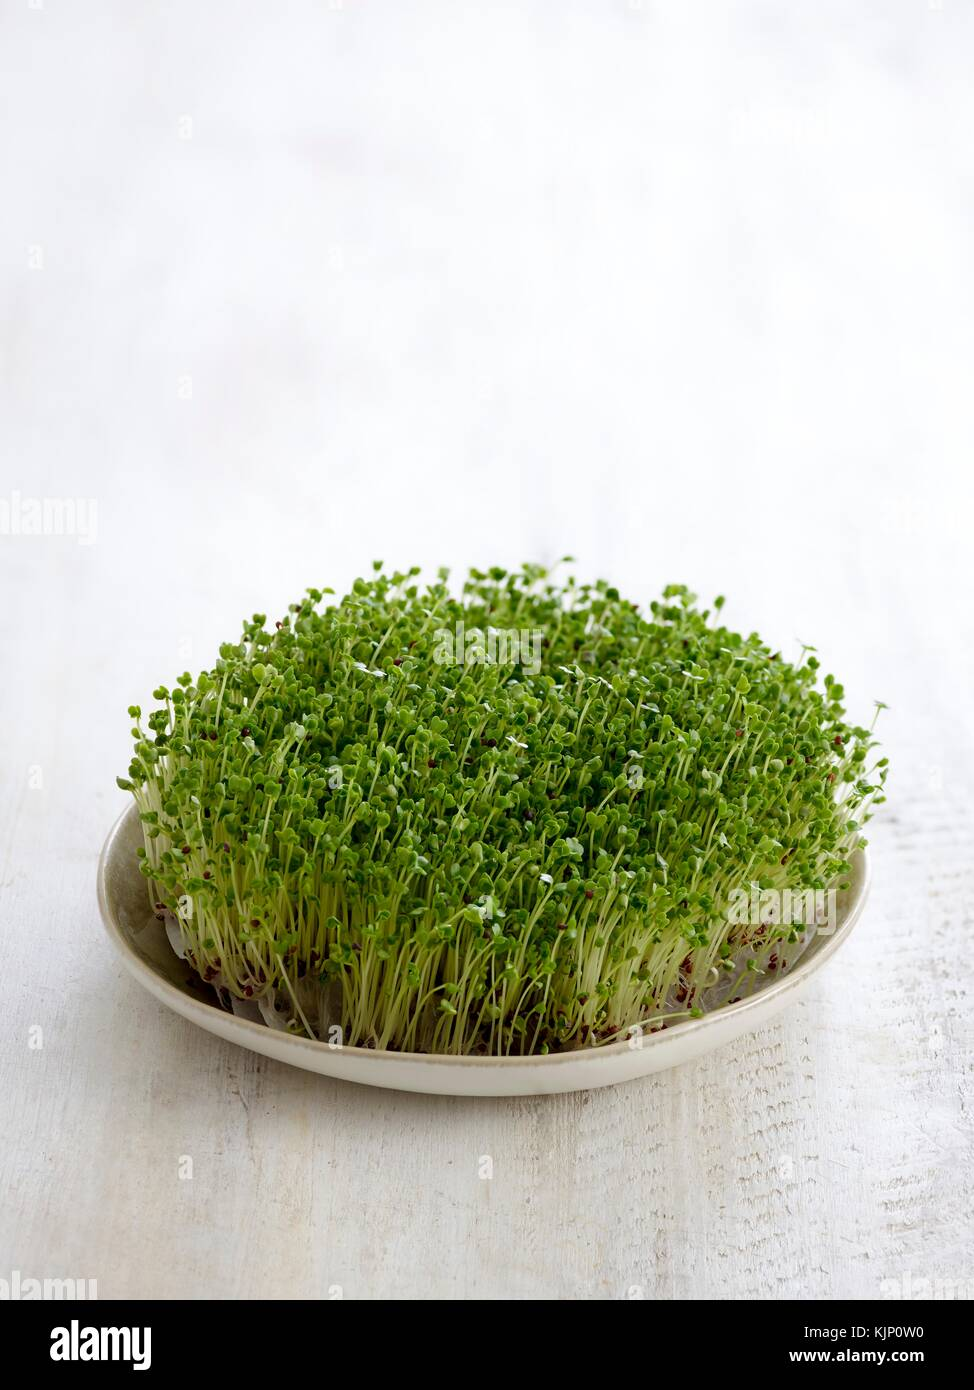 Sprouting broccoli in a dish. - Stock Image